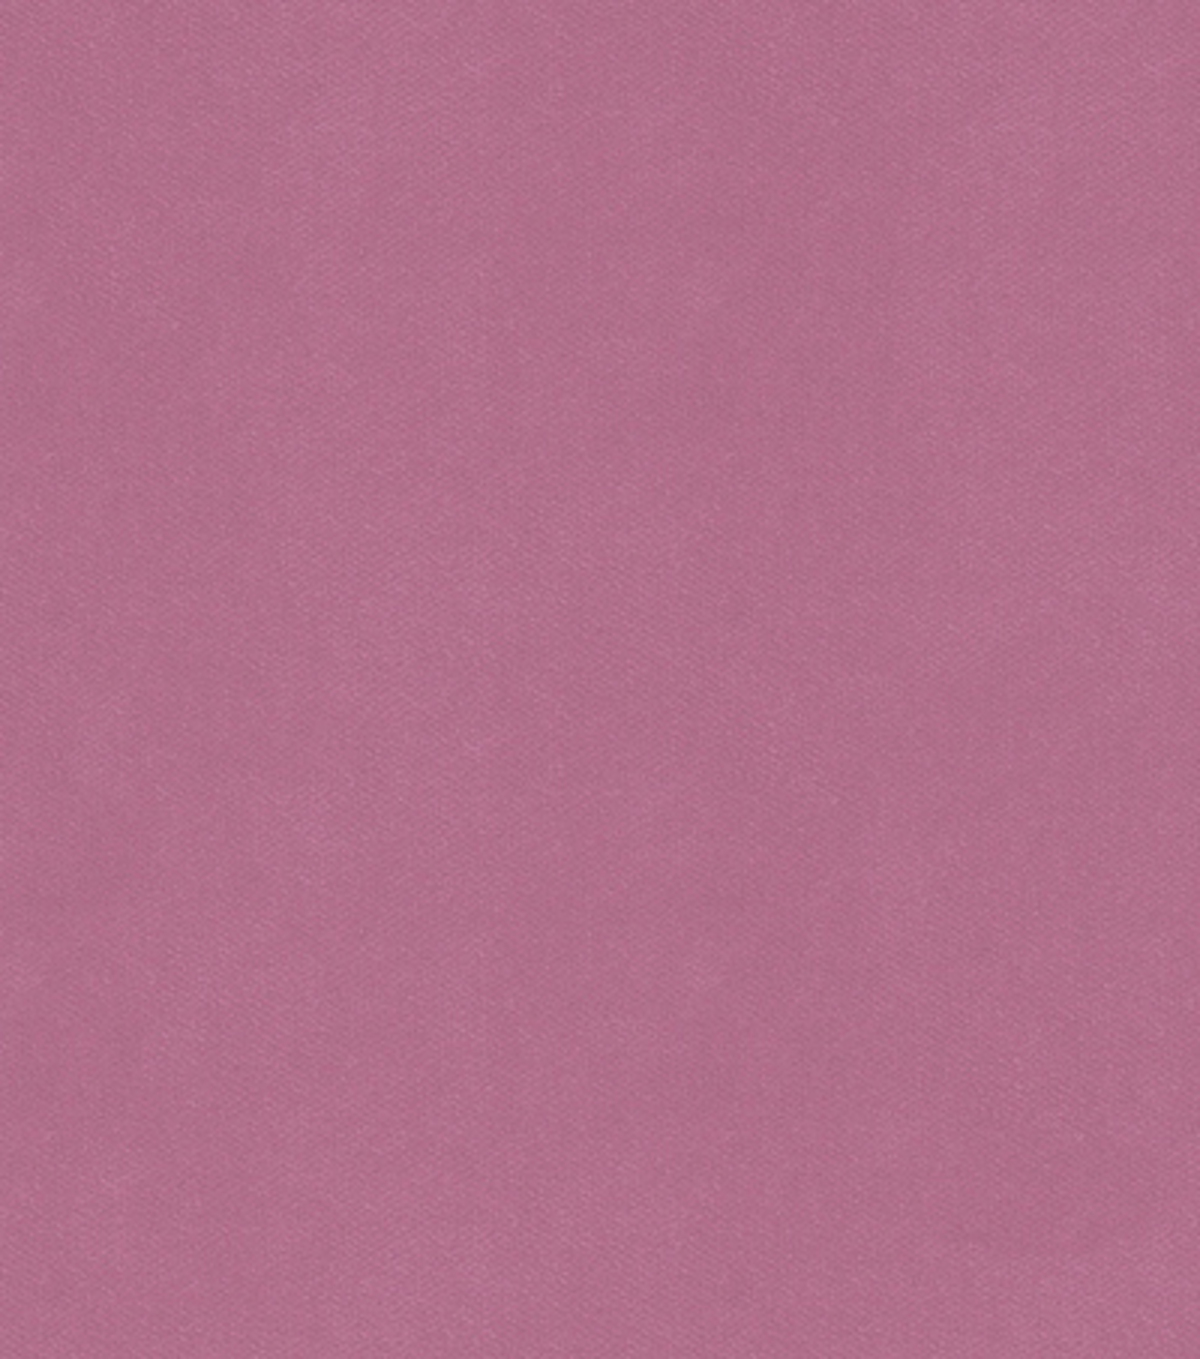 Home Decor 8\u0022x8\u0022 Fabric Swatch-Como-129-Rose Bisque